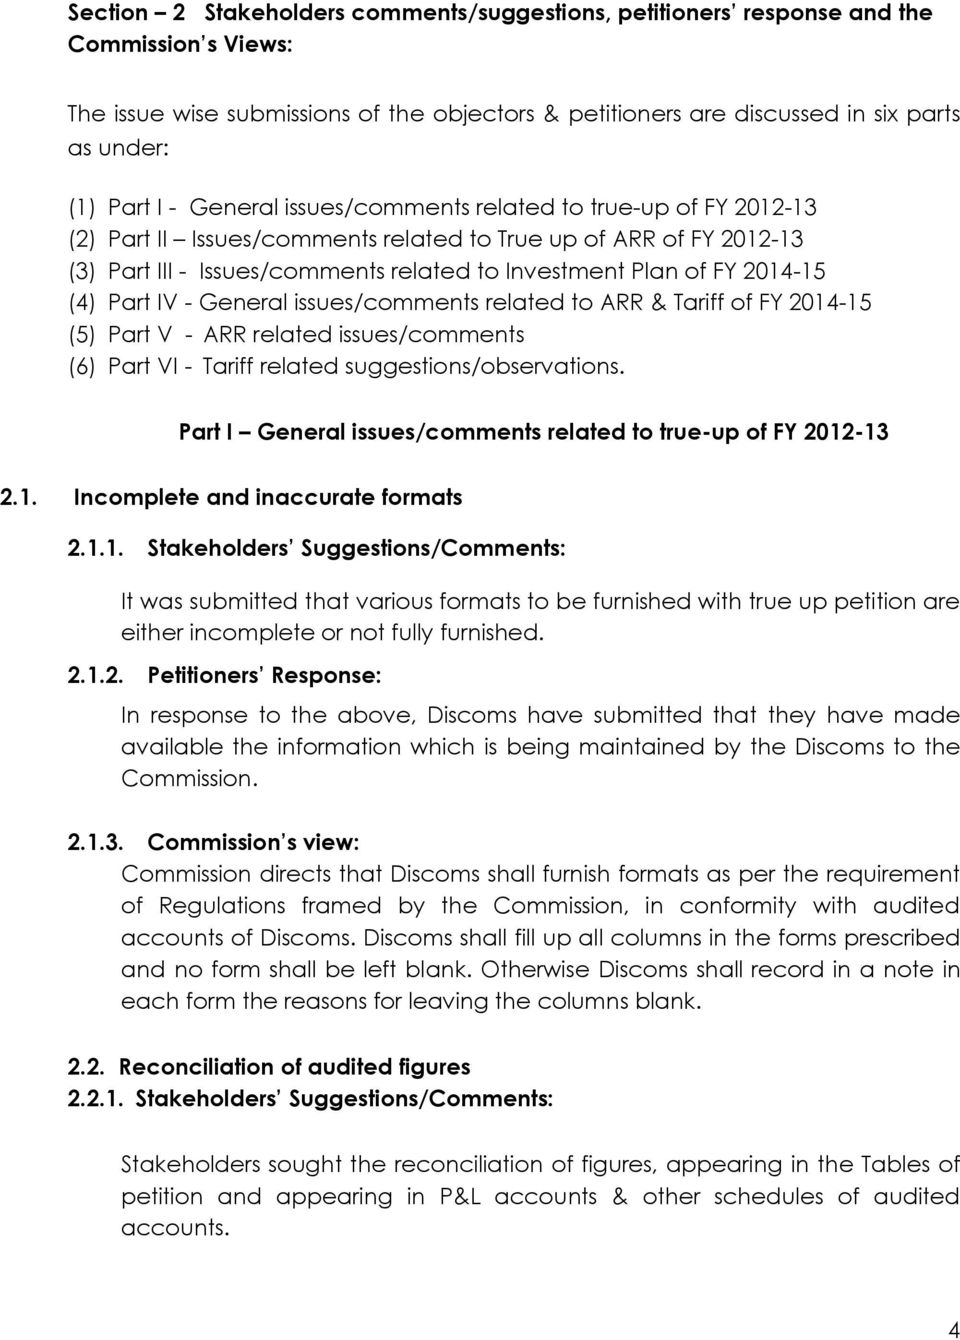 (4) Part IV - General issues/comments related to ARR & Tariff of FY 2014-15 (5) Part V - ARR related issues/comments (6) Part VI - Tariff related suggestions/observations.